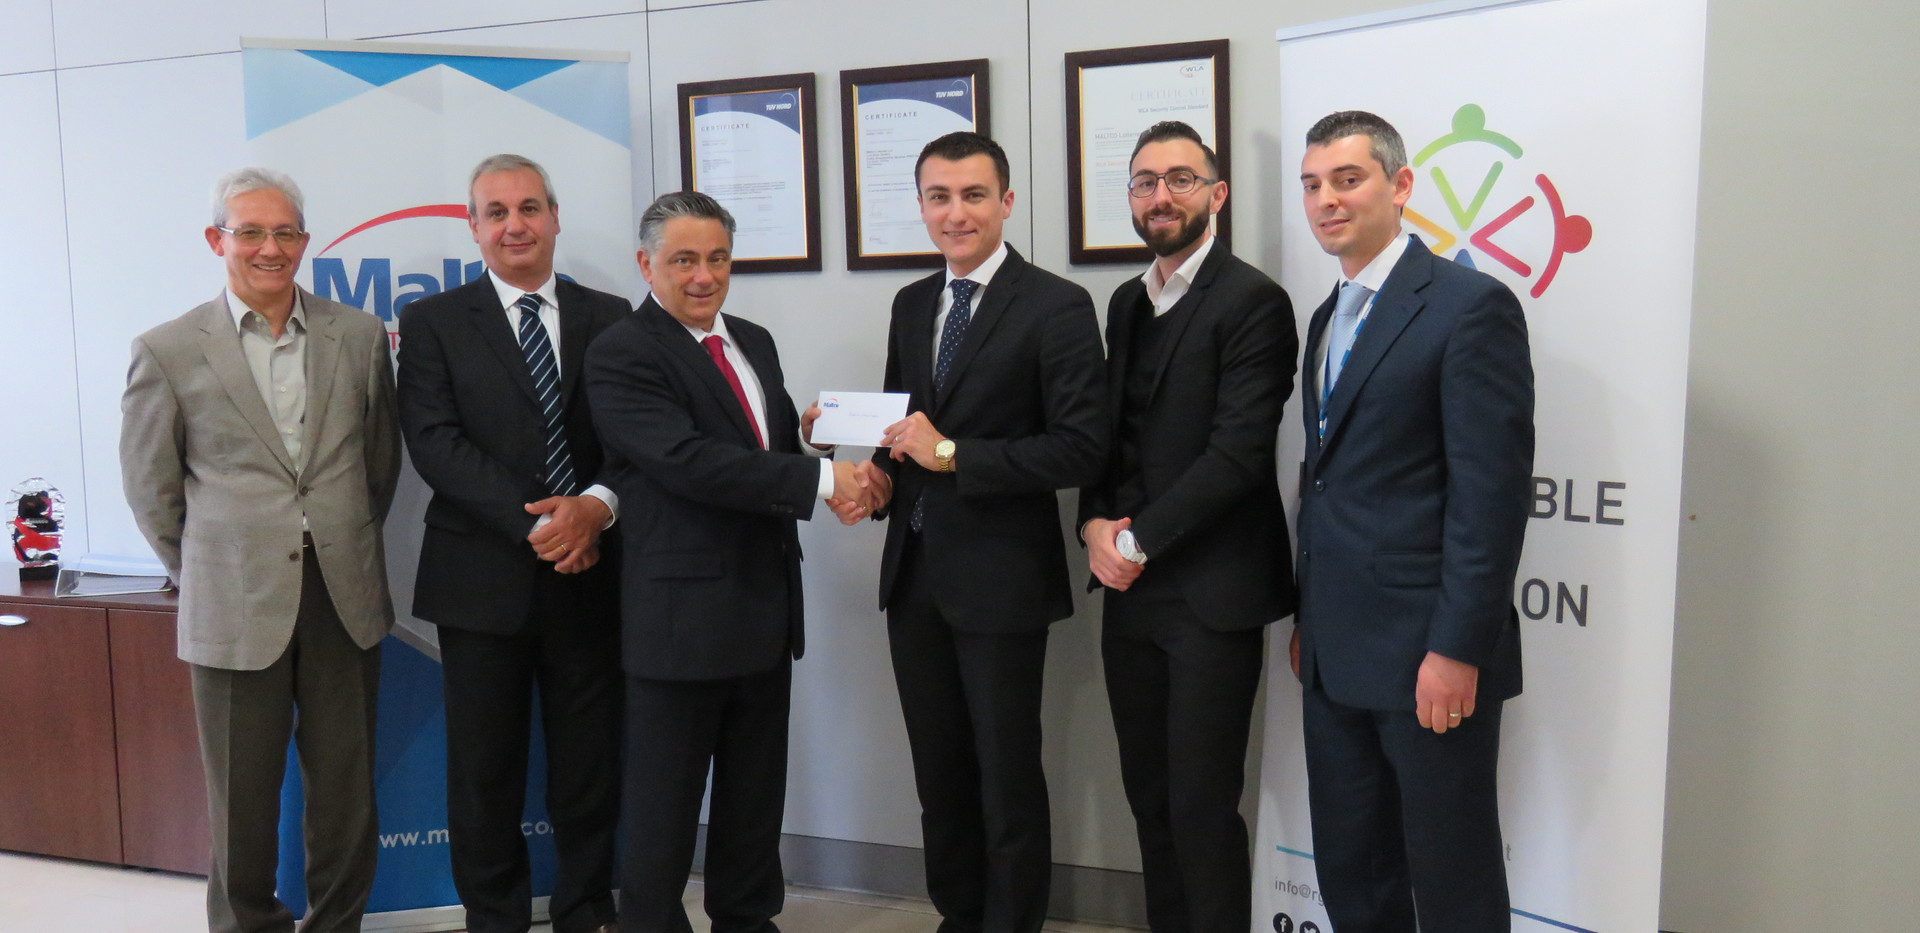 Maltco presents a cheque of €6,000 to the RGF for a scholarship at the UOM on responsible gaming research